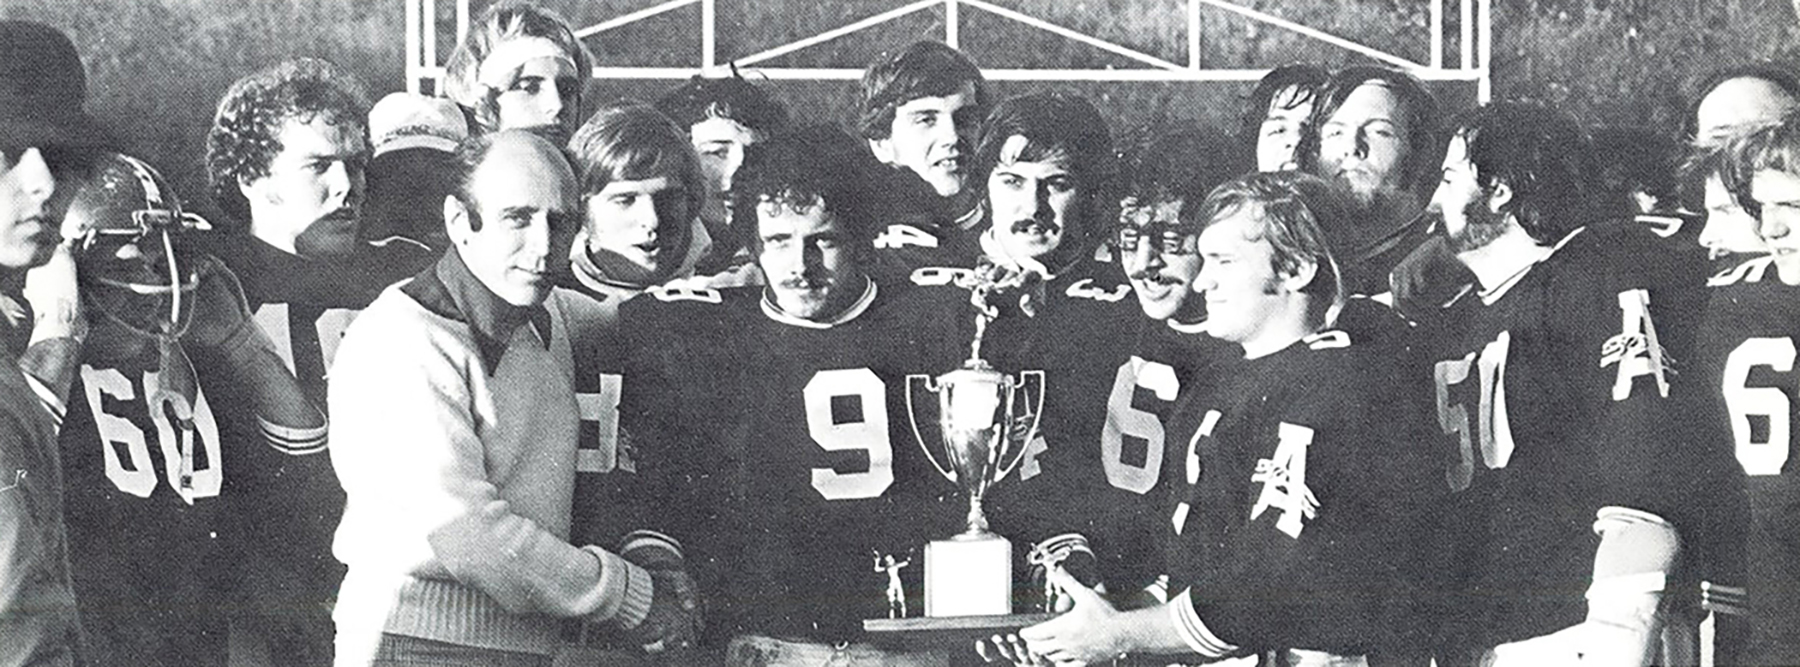 1974 Assumption team